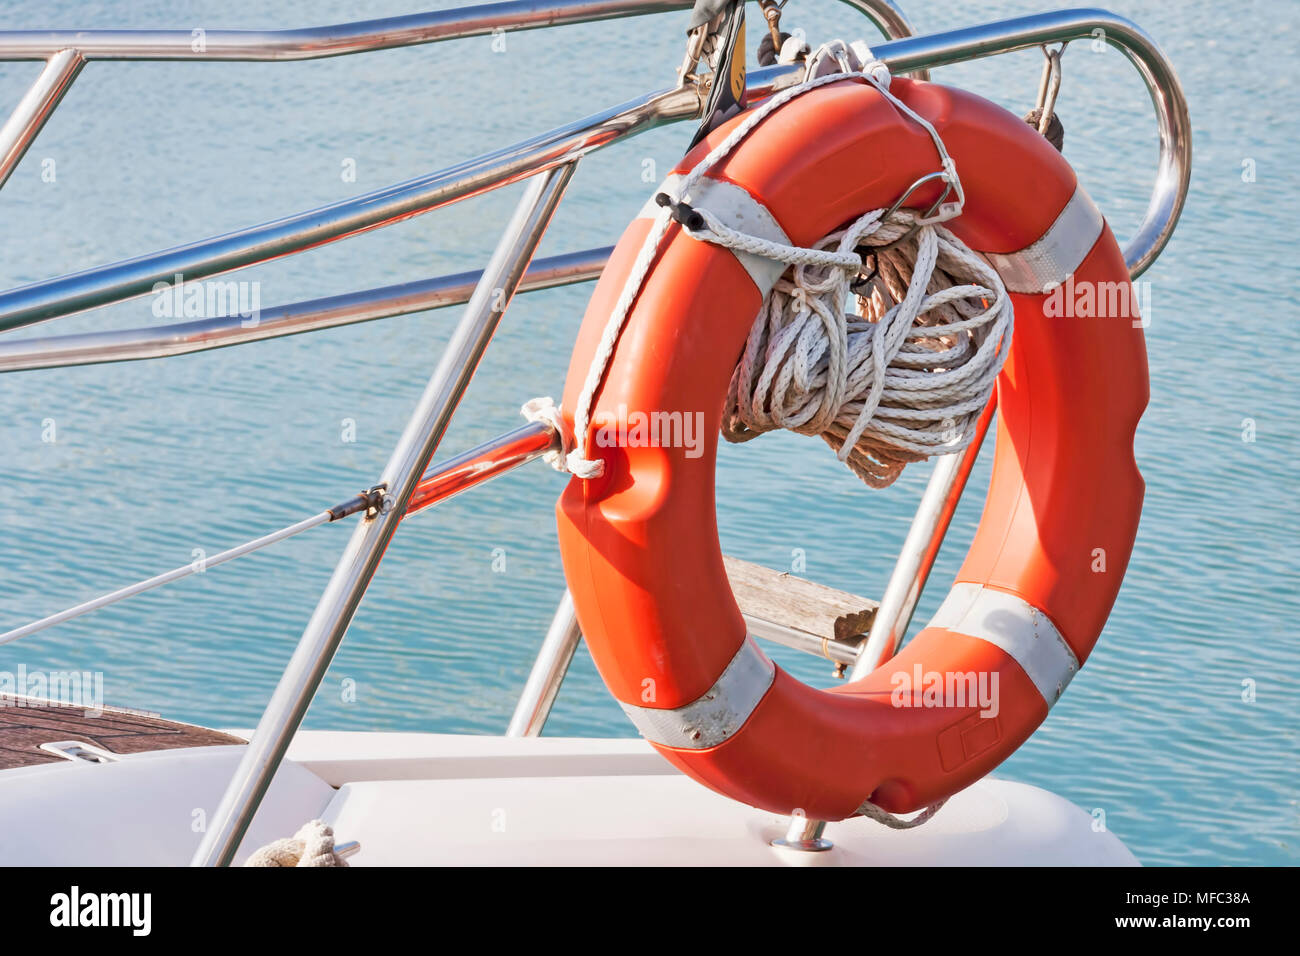 Safety equipment: lifeboat in the bow of a sailboat - Stock Image